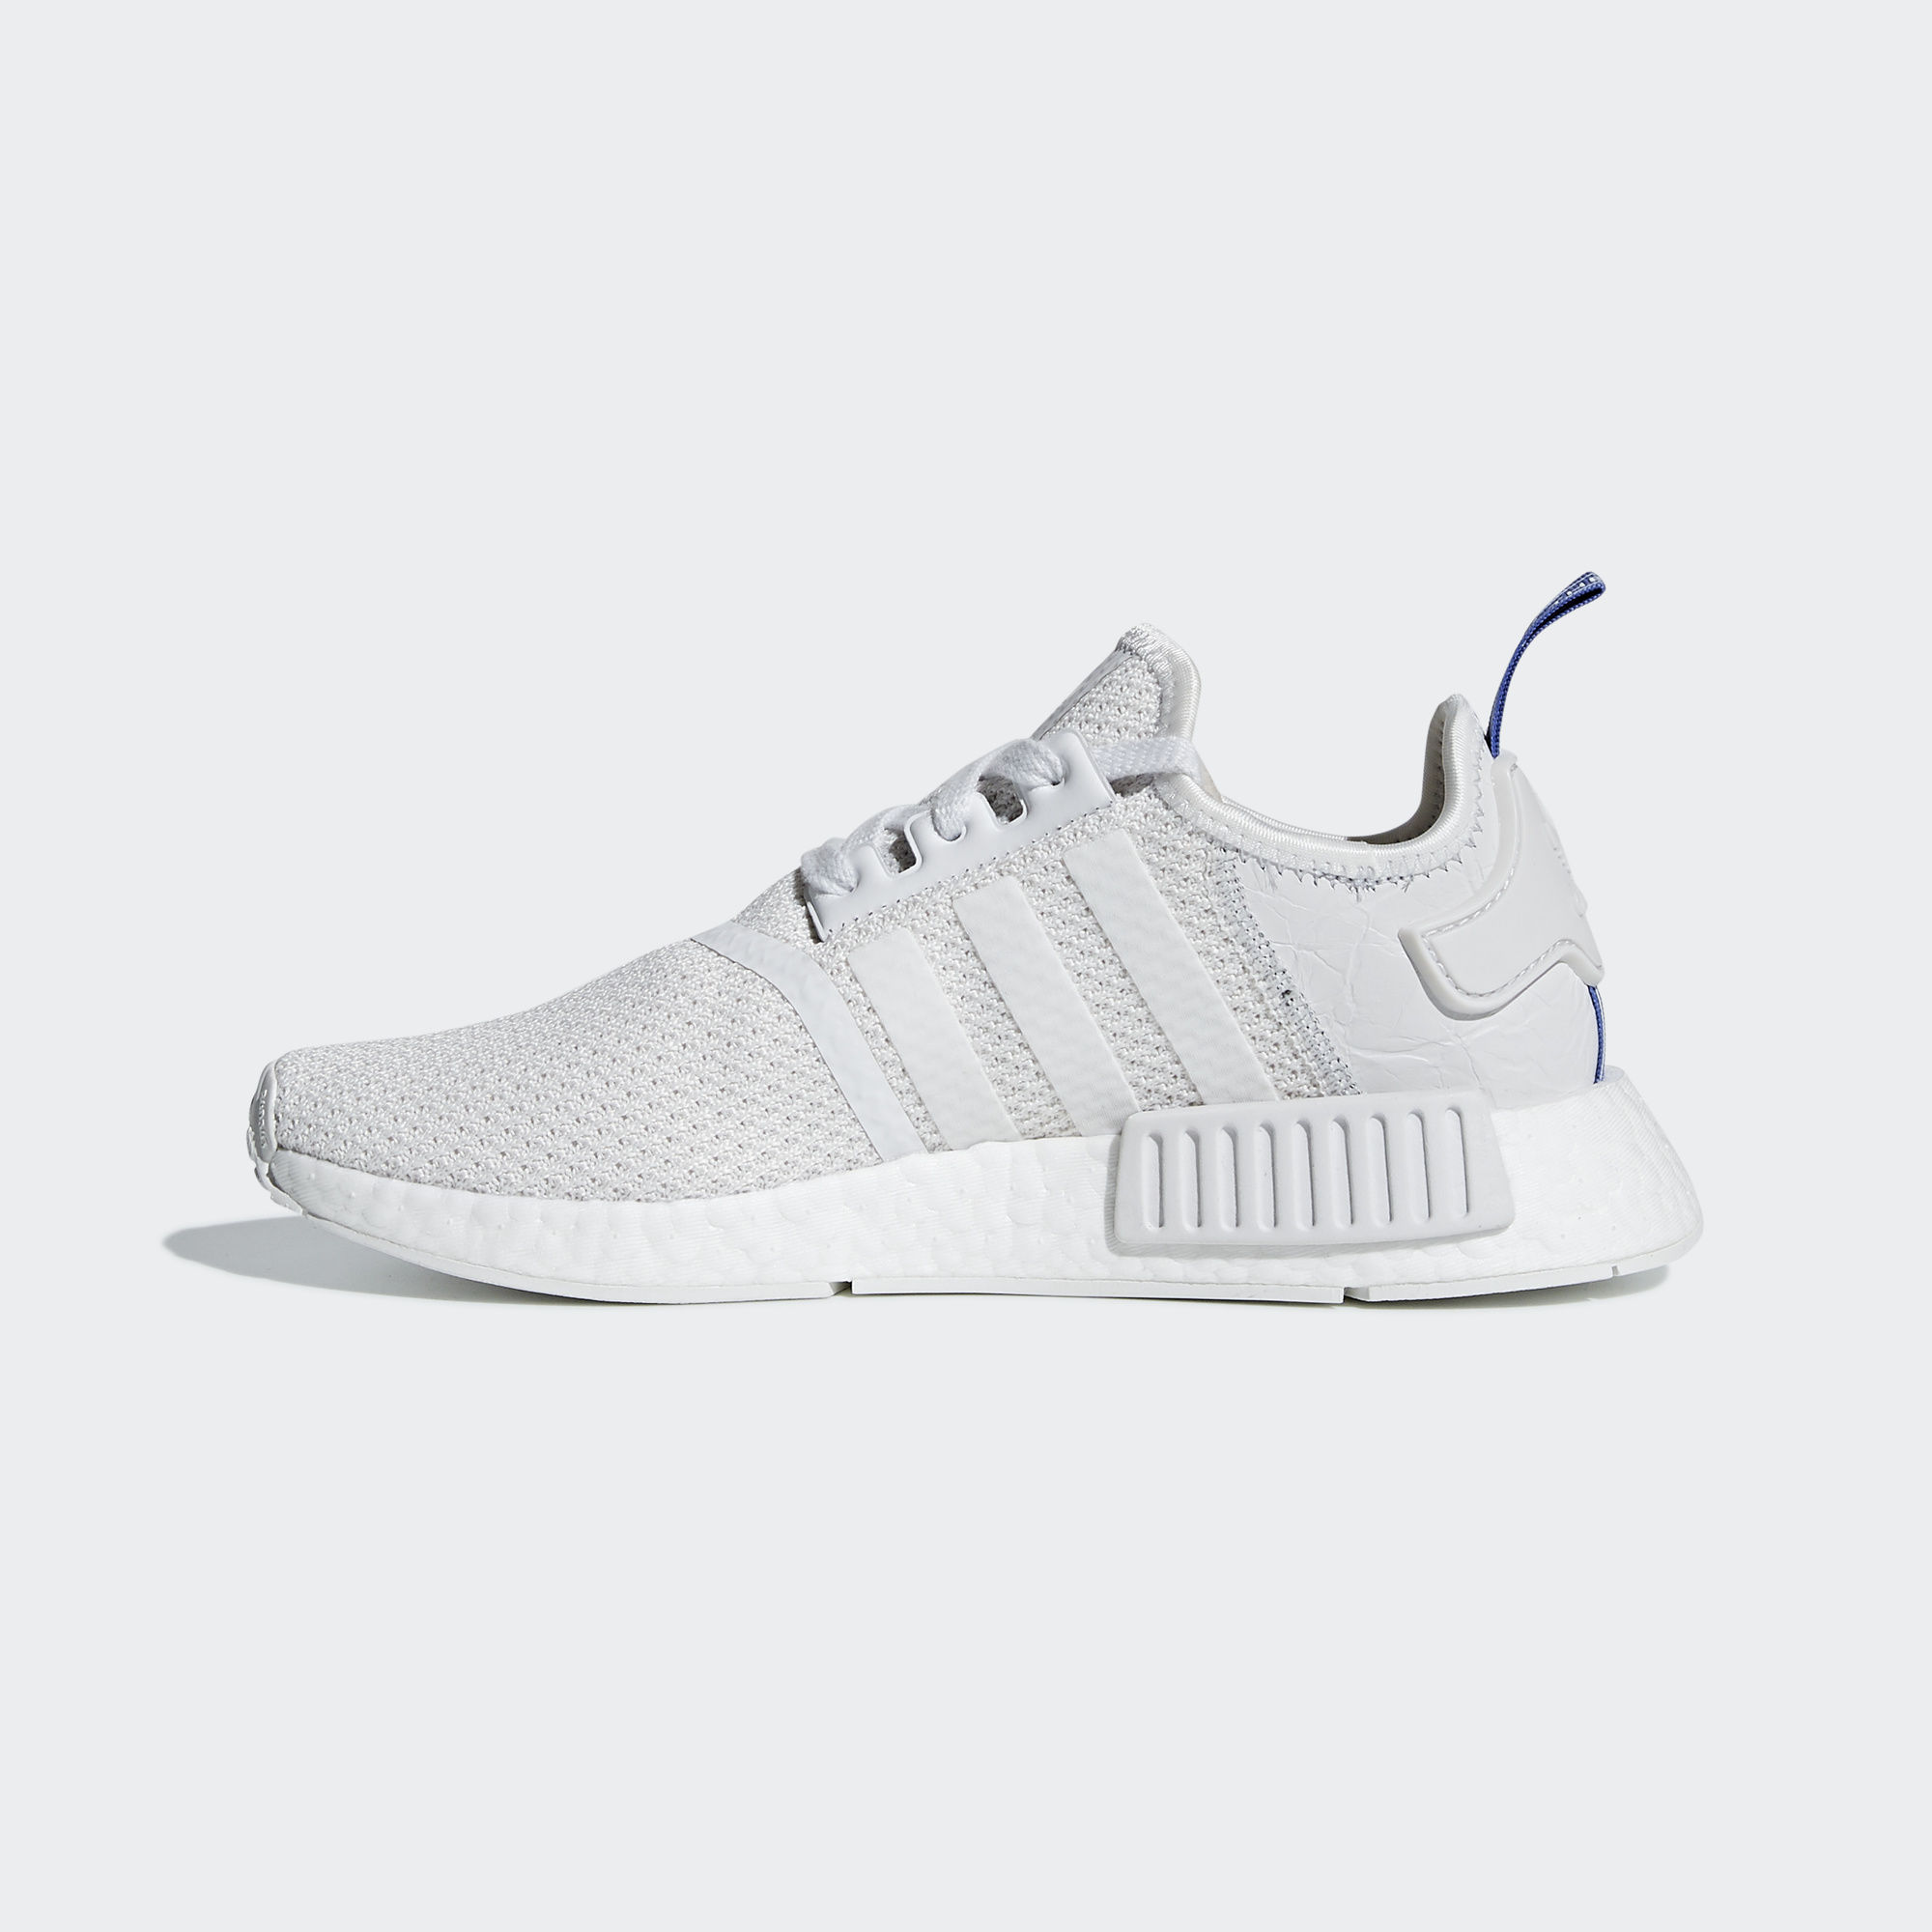 Adidas NMD_R1 Crystal White / Crystal White / Real Lilac (B37645)